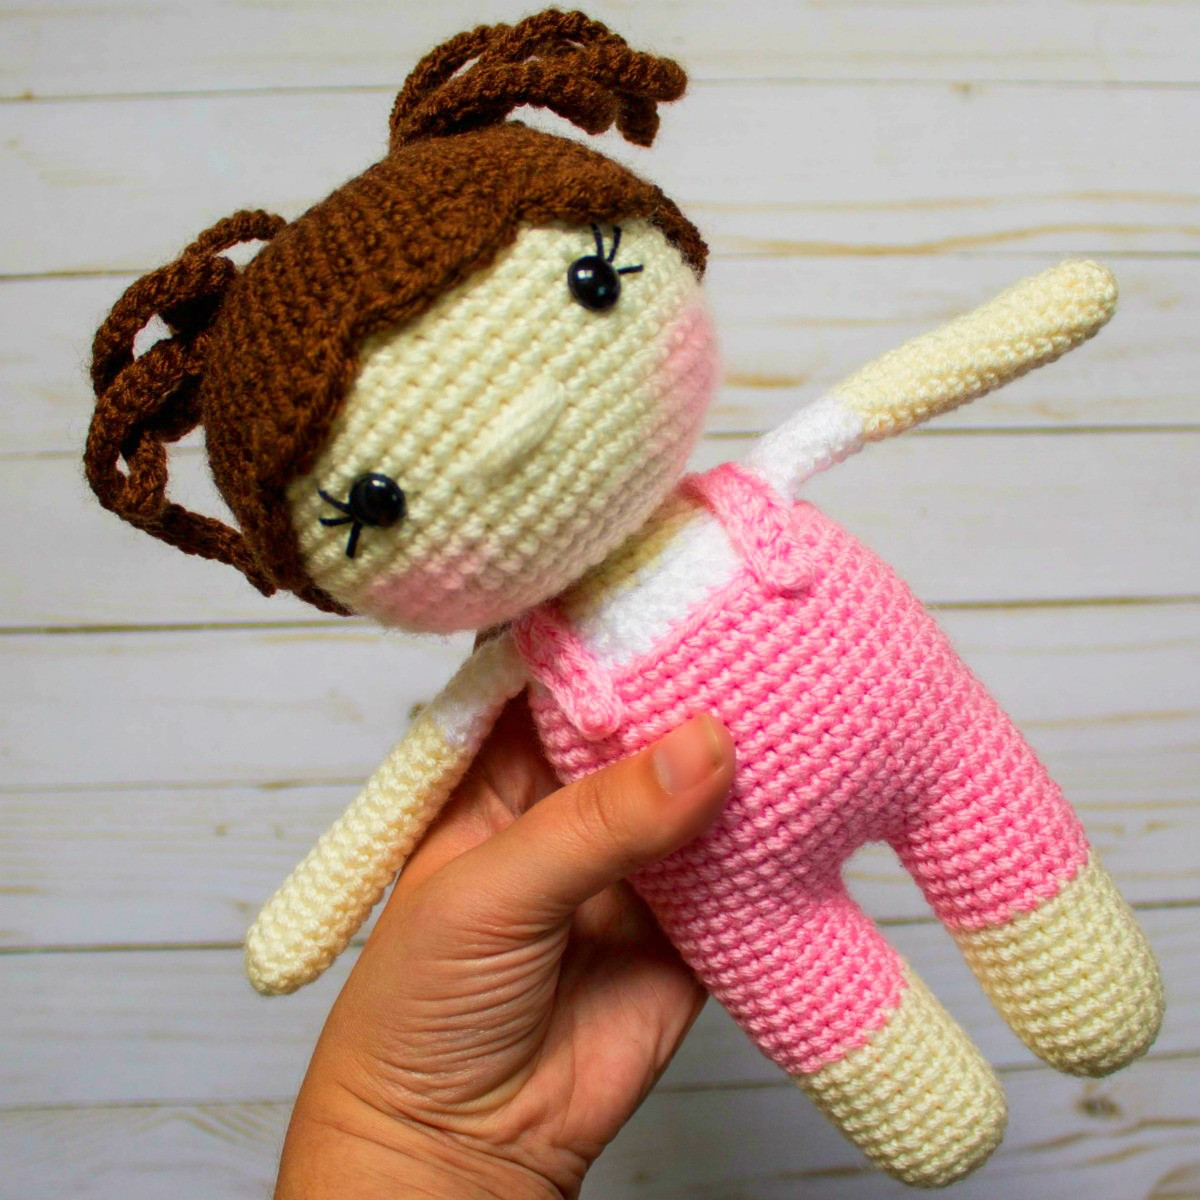 Crochet Doll Unique the Friendly Molly thefriendlyredfox Of Crochet Doll Inspirational Snow White Doll Crochet Pattern